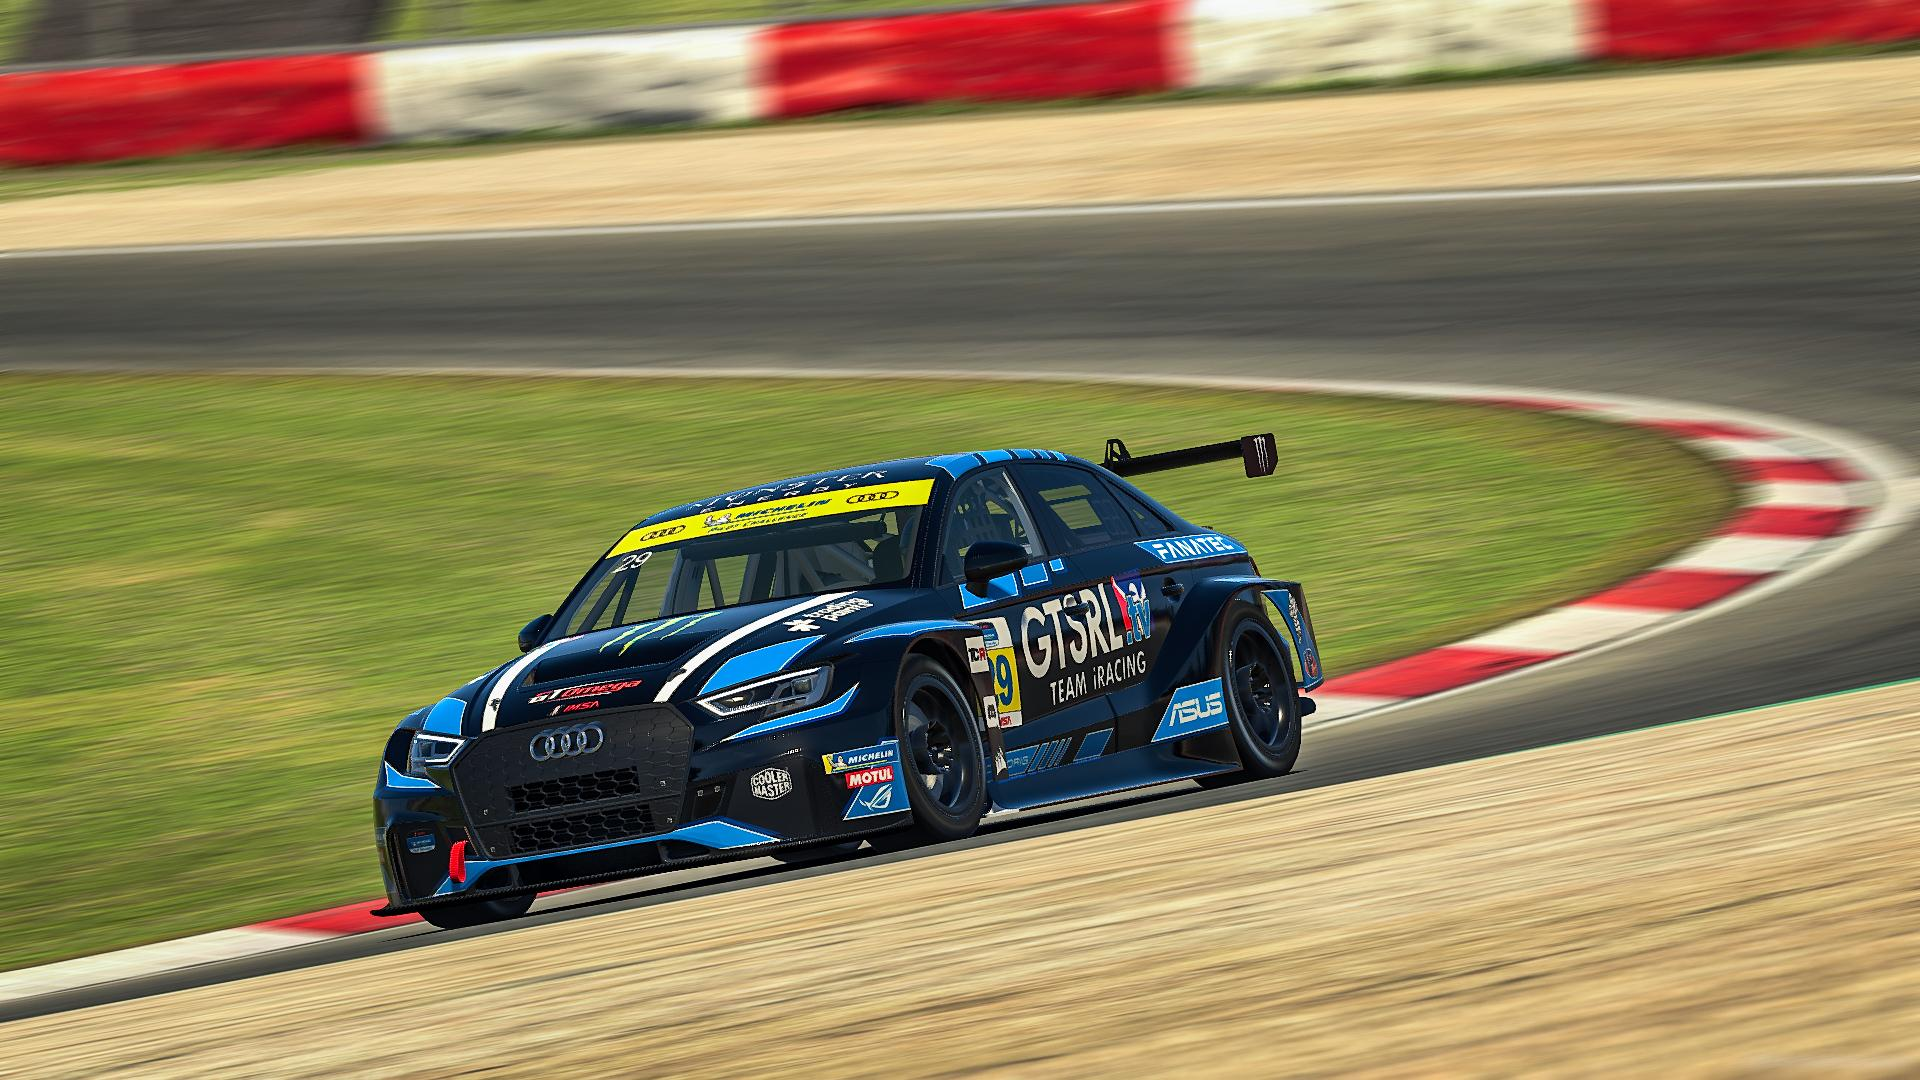 Preview of GTSRL Audi RS3 LMS by Vincent W.